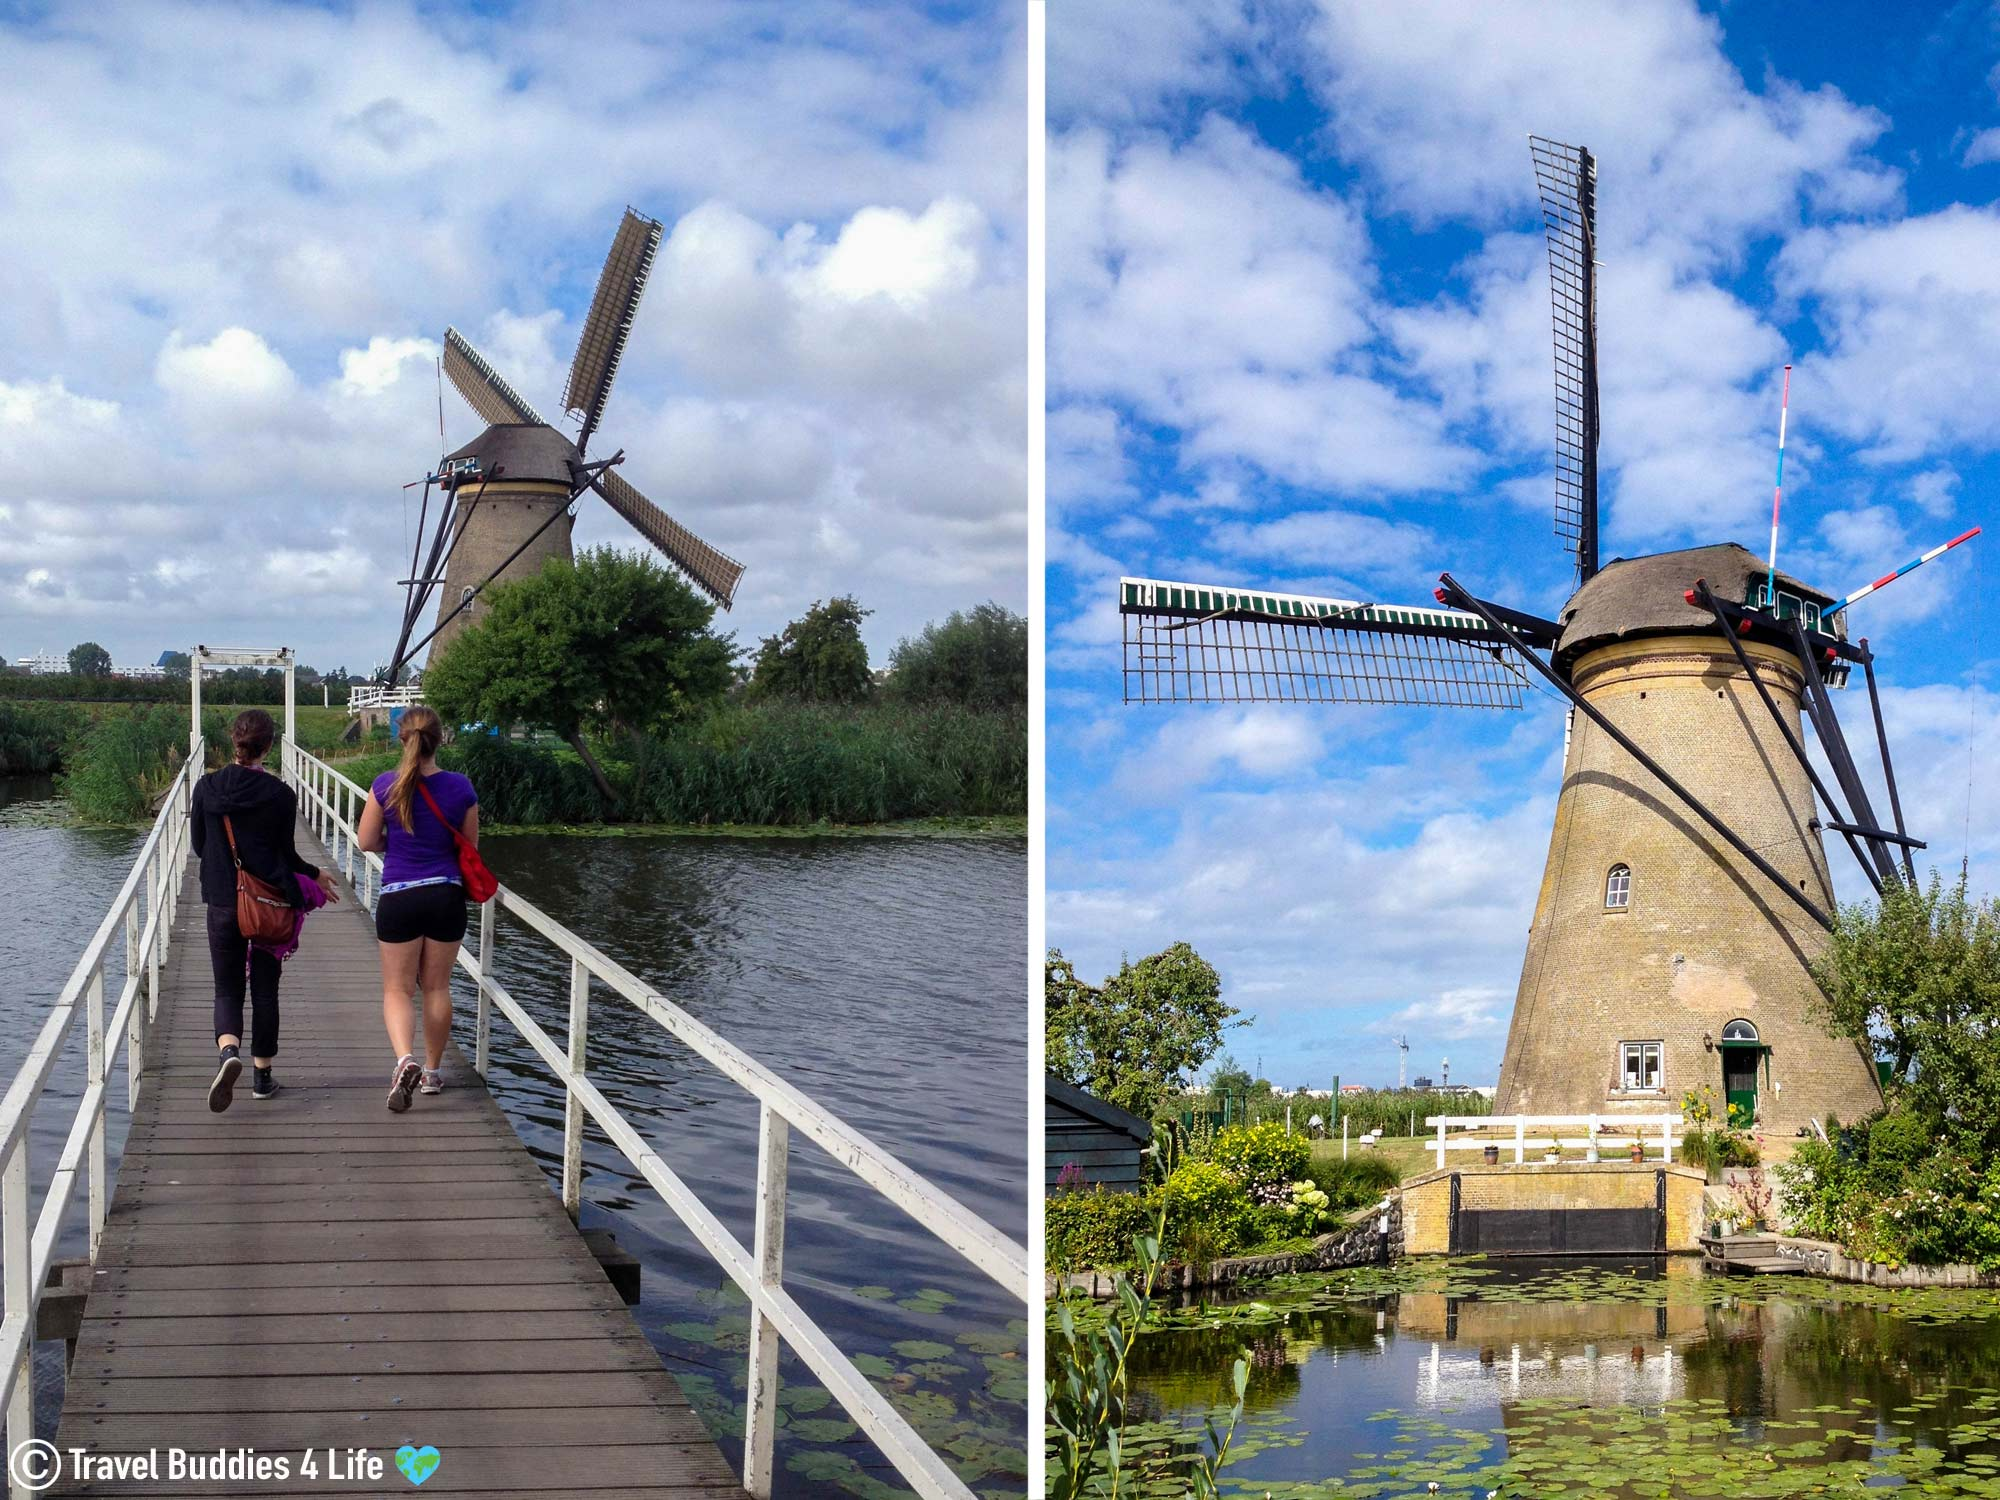 Walking The Paths Of The Kinderdijk, The Netherlands, Europe